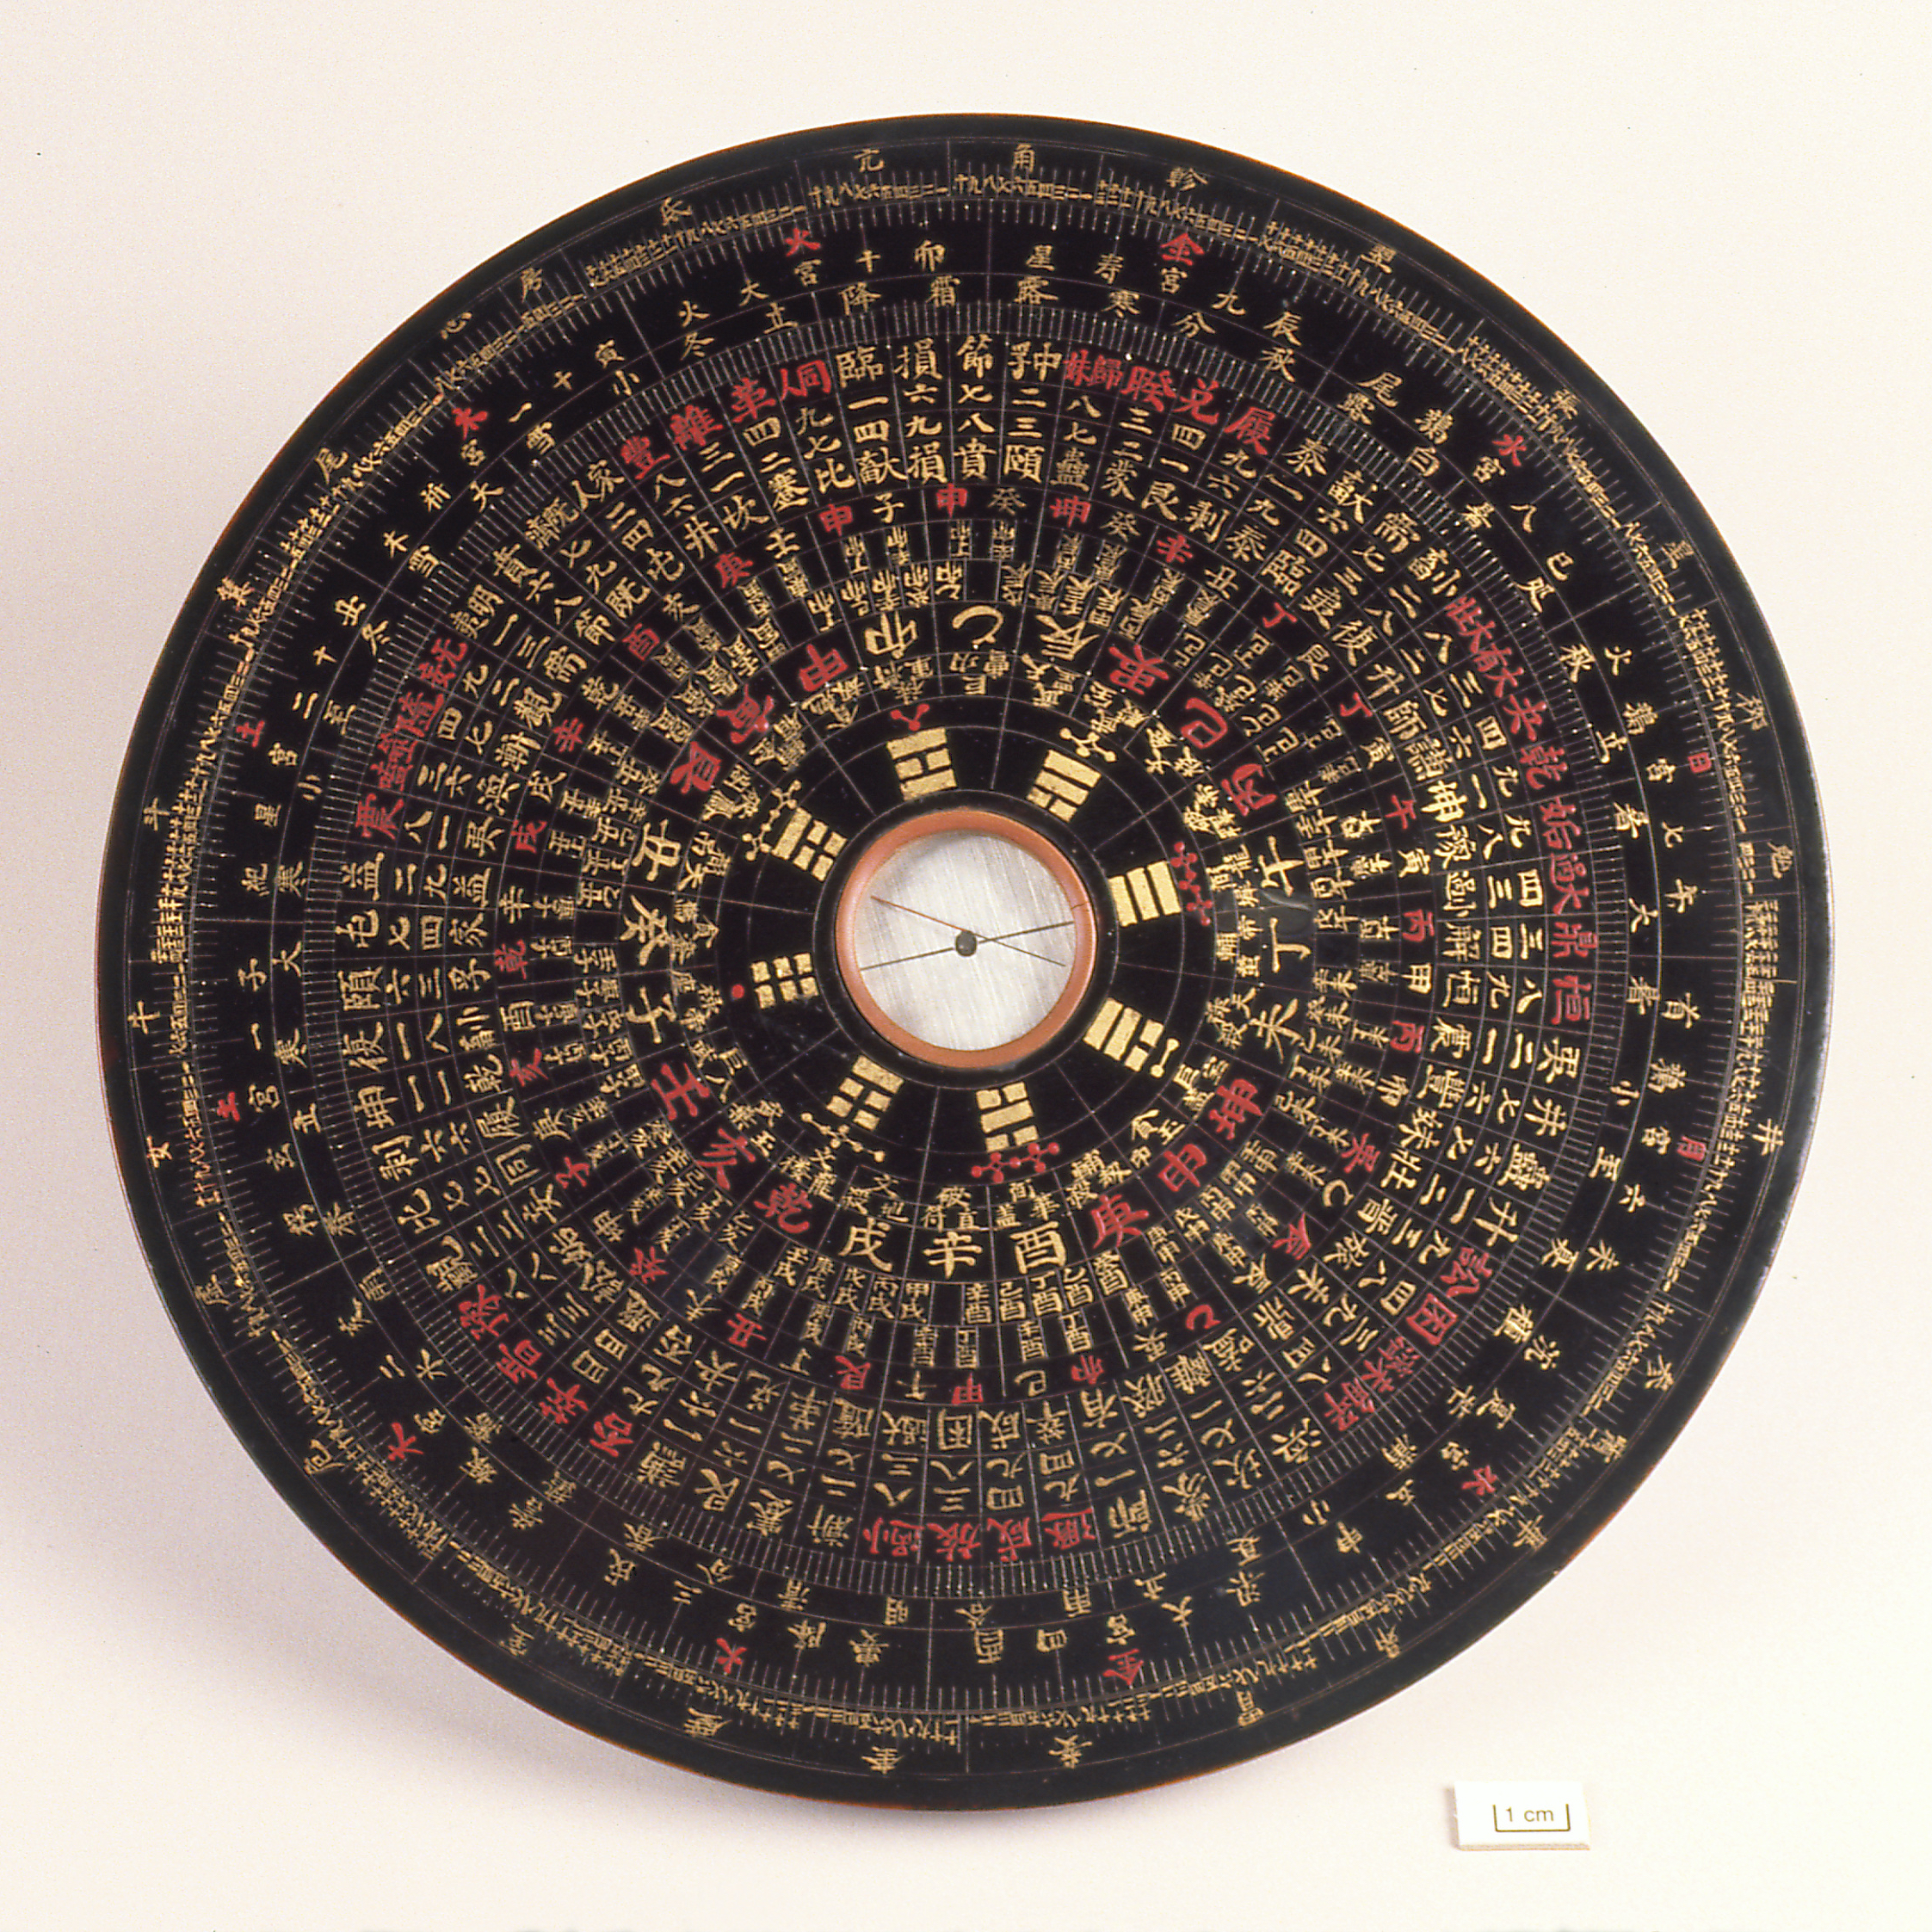 19th century Chinese astrological compass_DF_5271